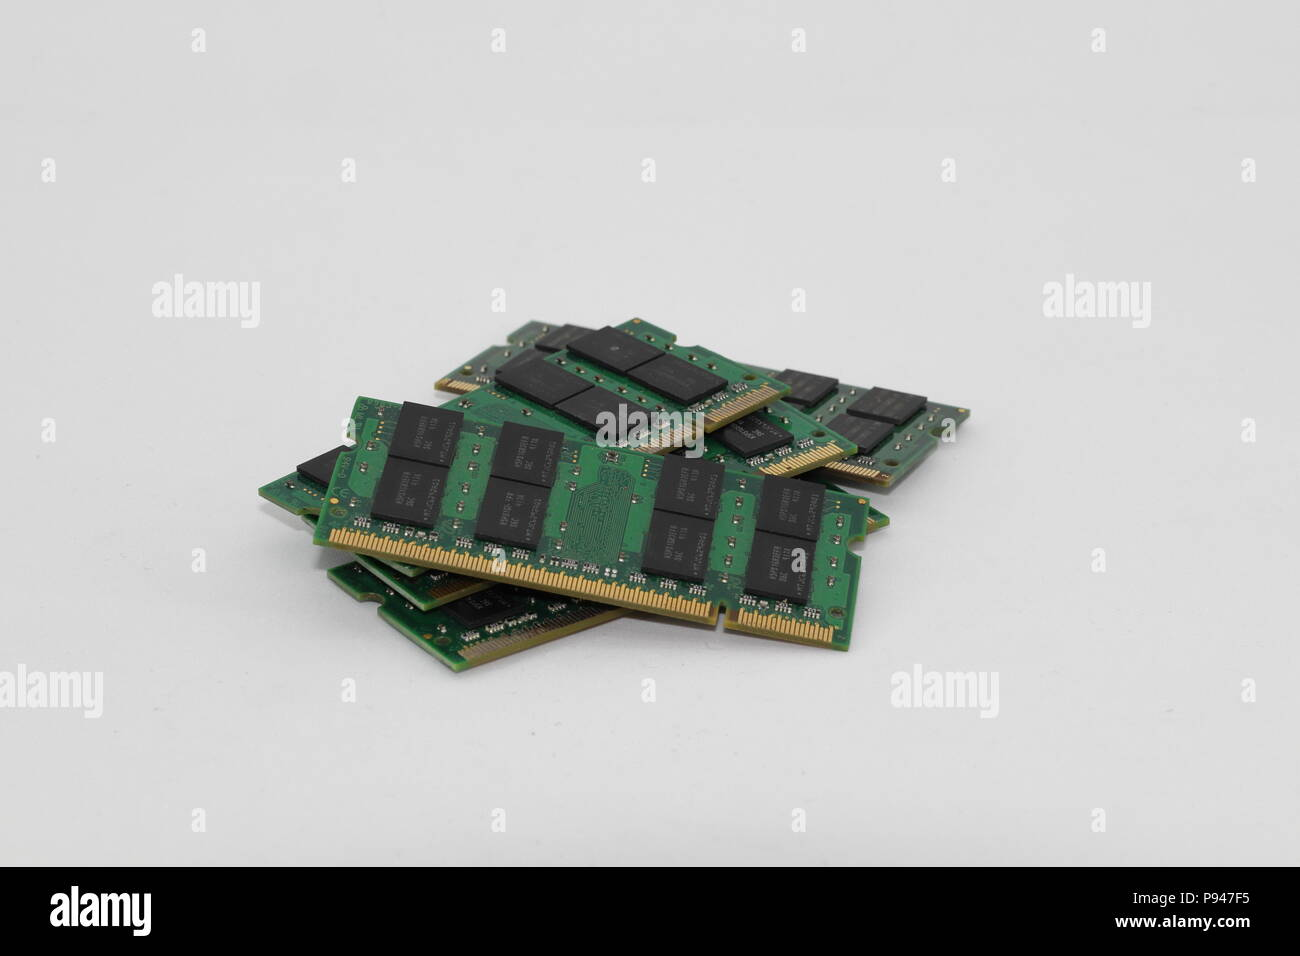 Dimm Stock Photos Images Alamy Ram Laptop Ddr2 2gb Pc2 6400 Asli Jepang Pile Of Computer Notebook Or Tablet Memory Module Isolated On White Background